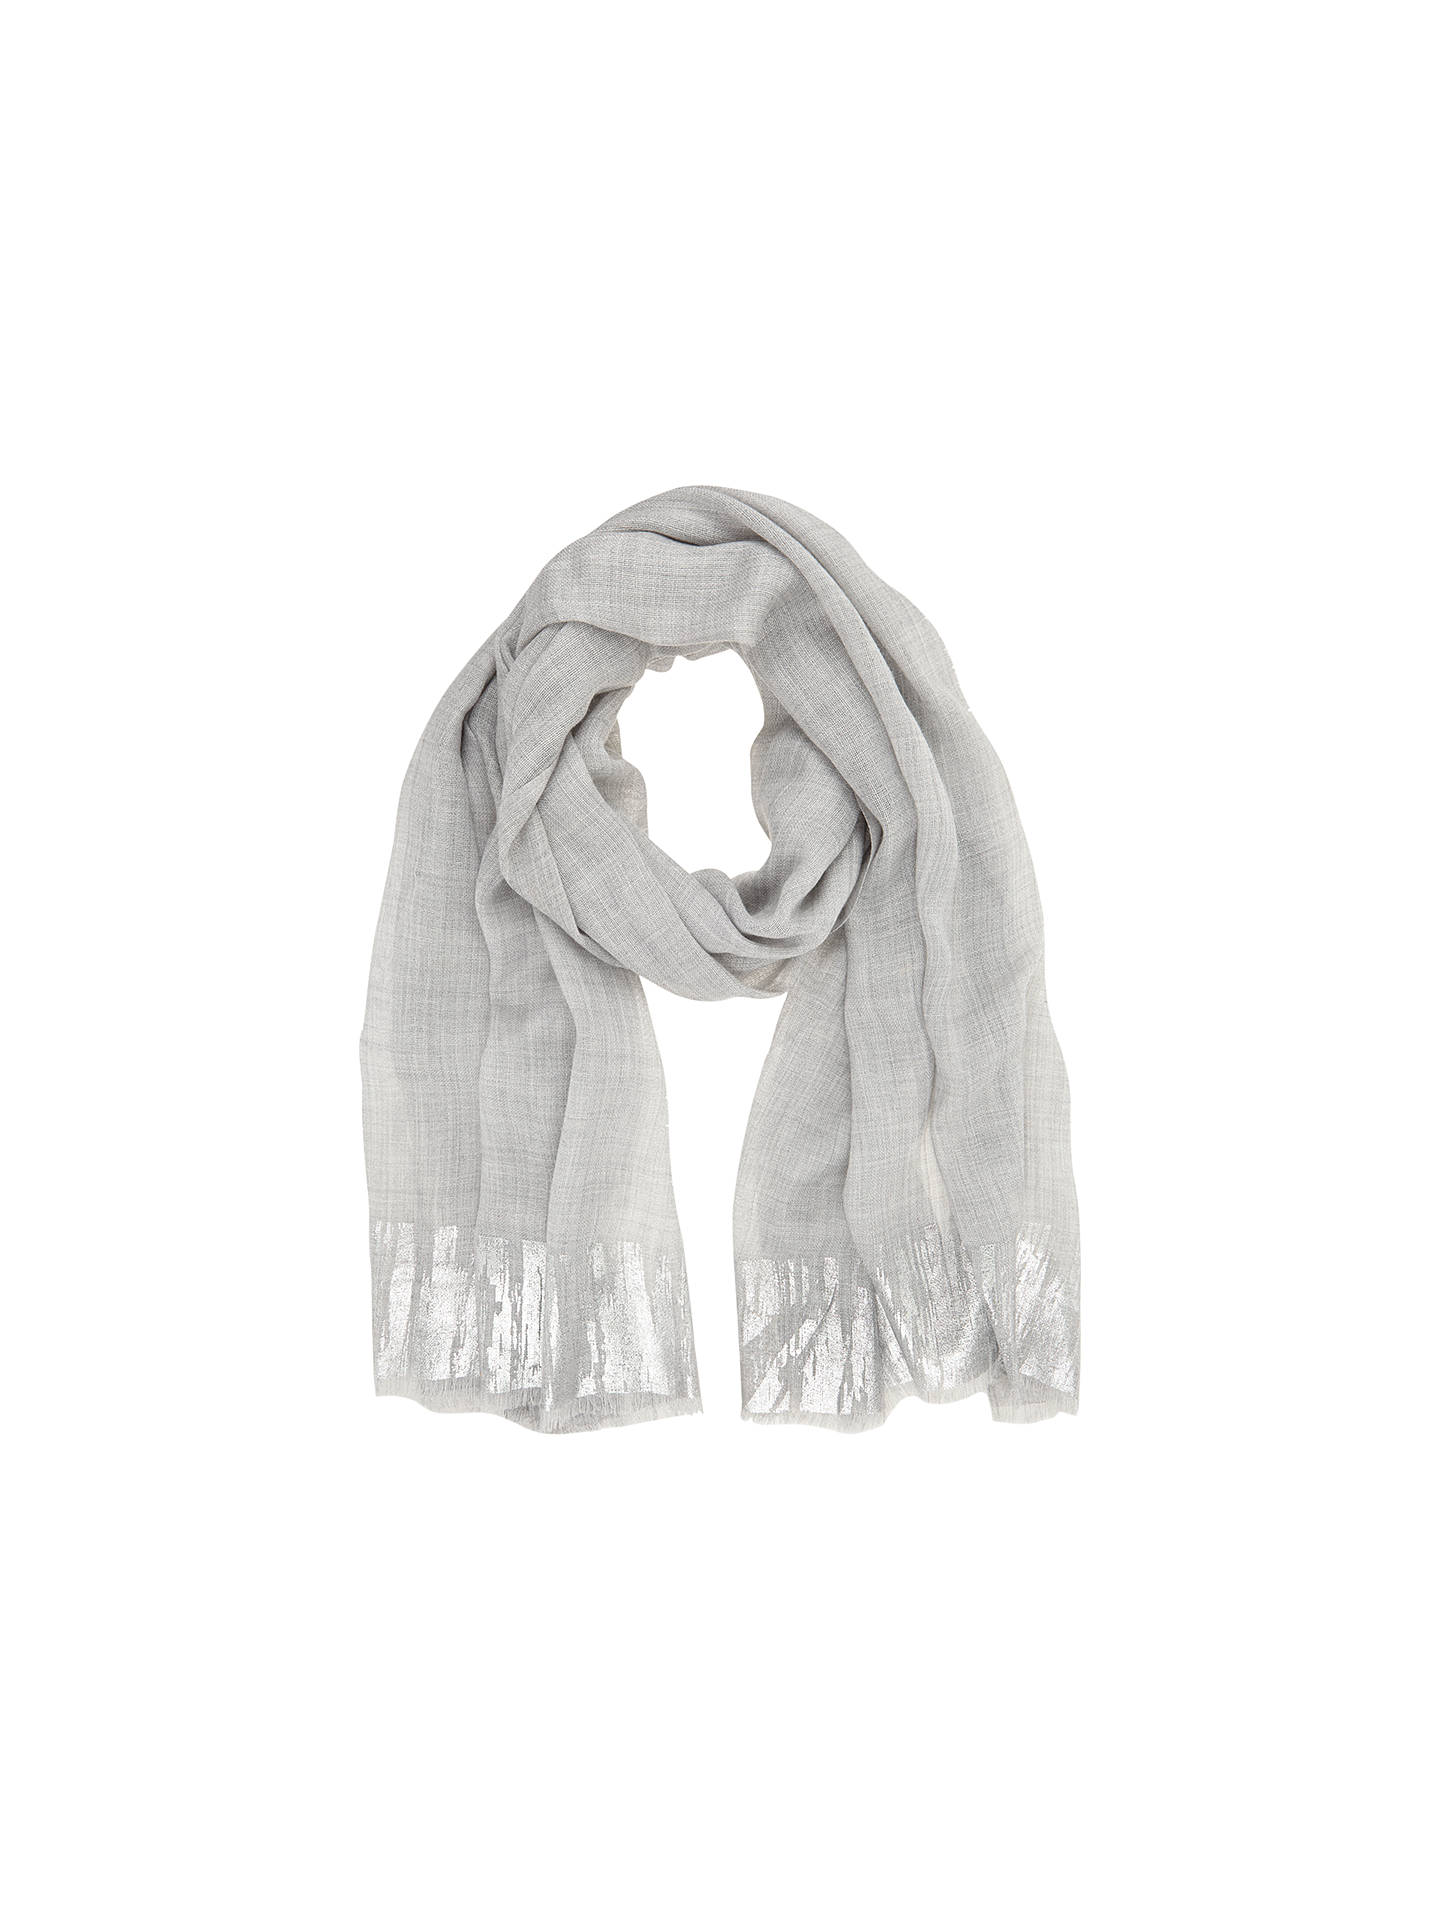 aaaf4ab56666a Buy Hygge by Mint Velvet Metallic Ombre Scarf, Silver Grey Online at  johnlewis.com ...